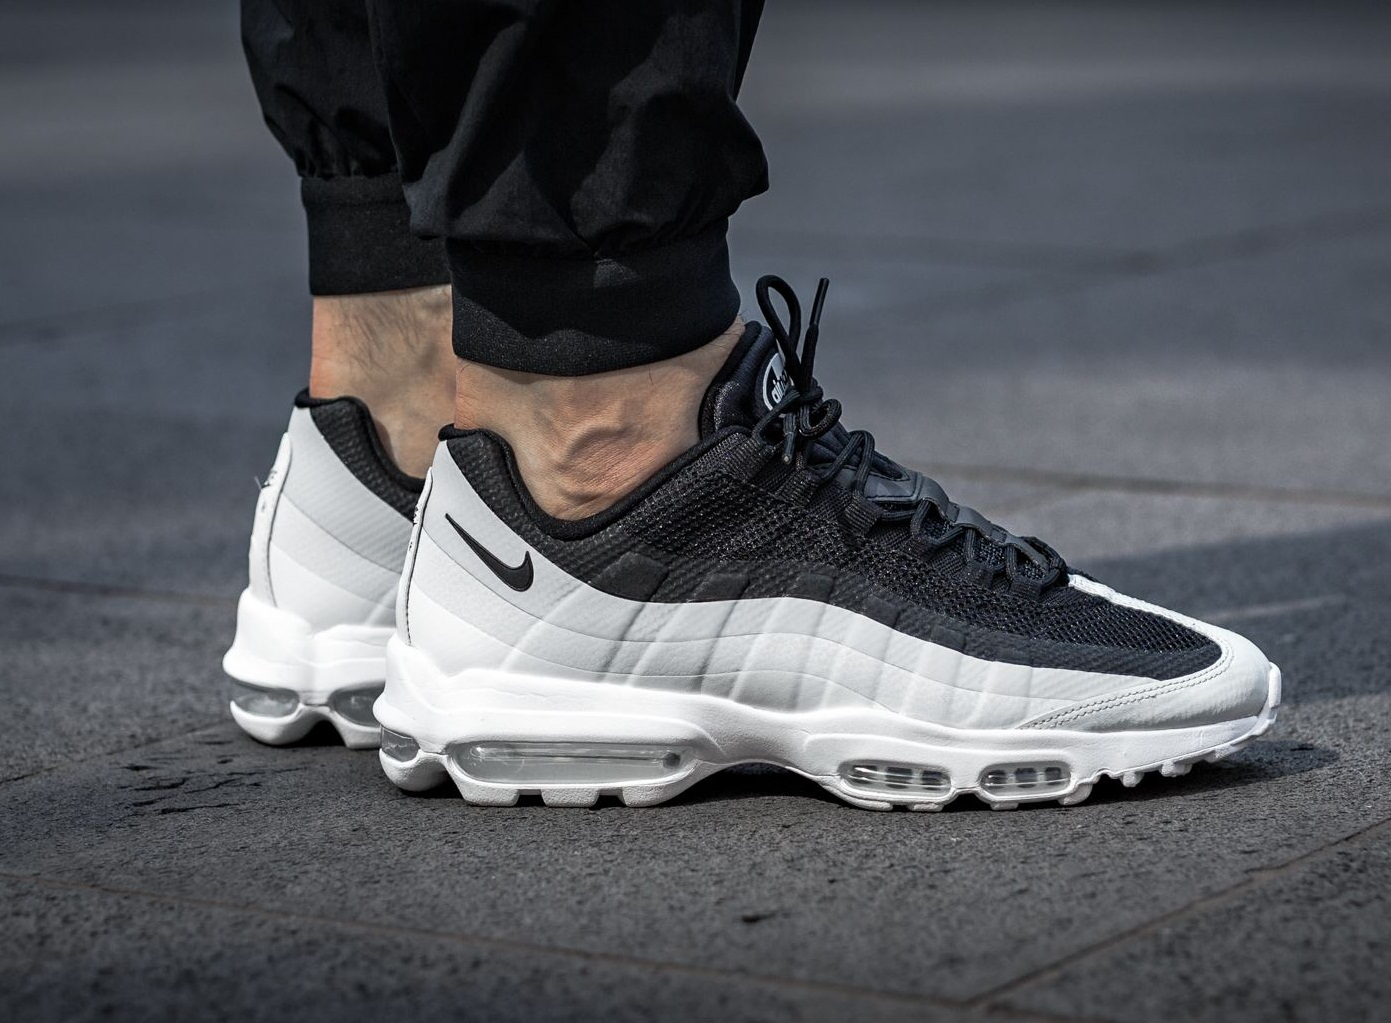 Conception innovante f0da5 97477 air max 95 ultra noir et blanc